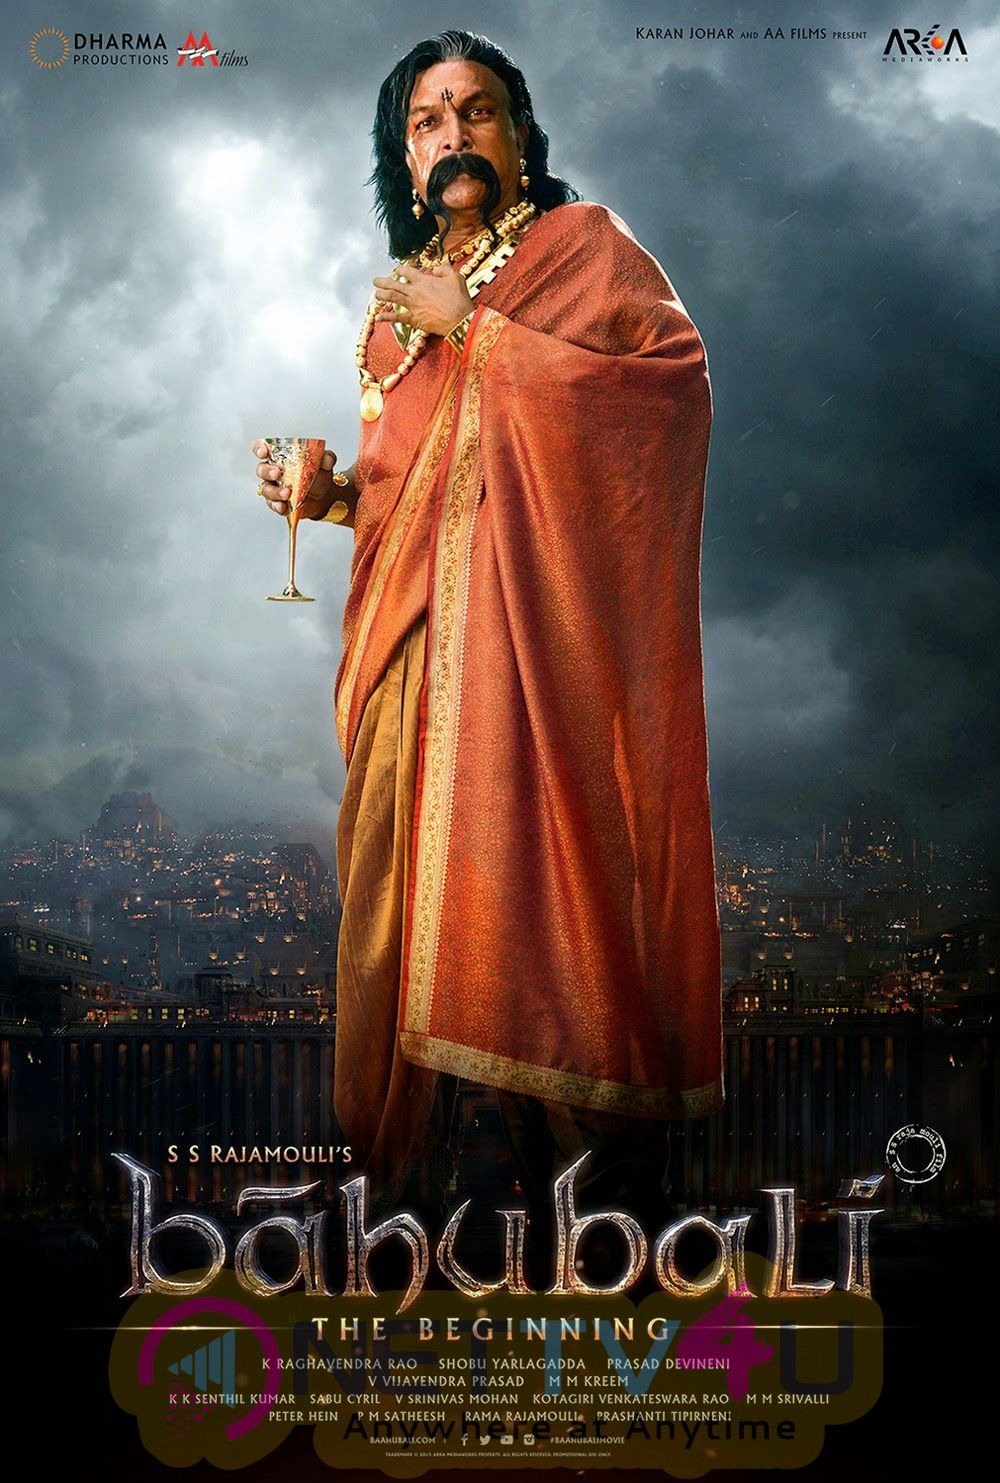 Wallpapers And Posters For Bahubali Bolywood Movie 30 Days